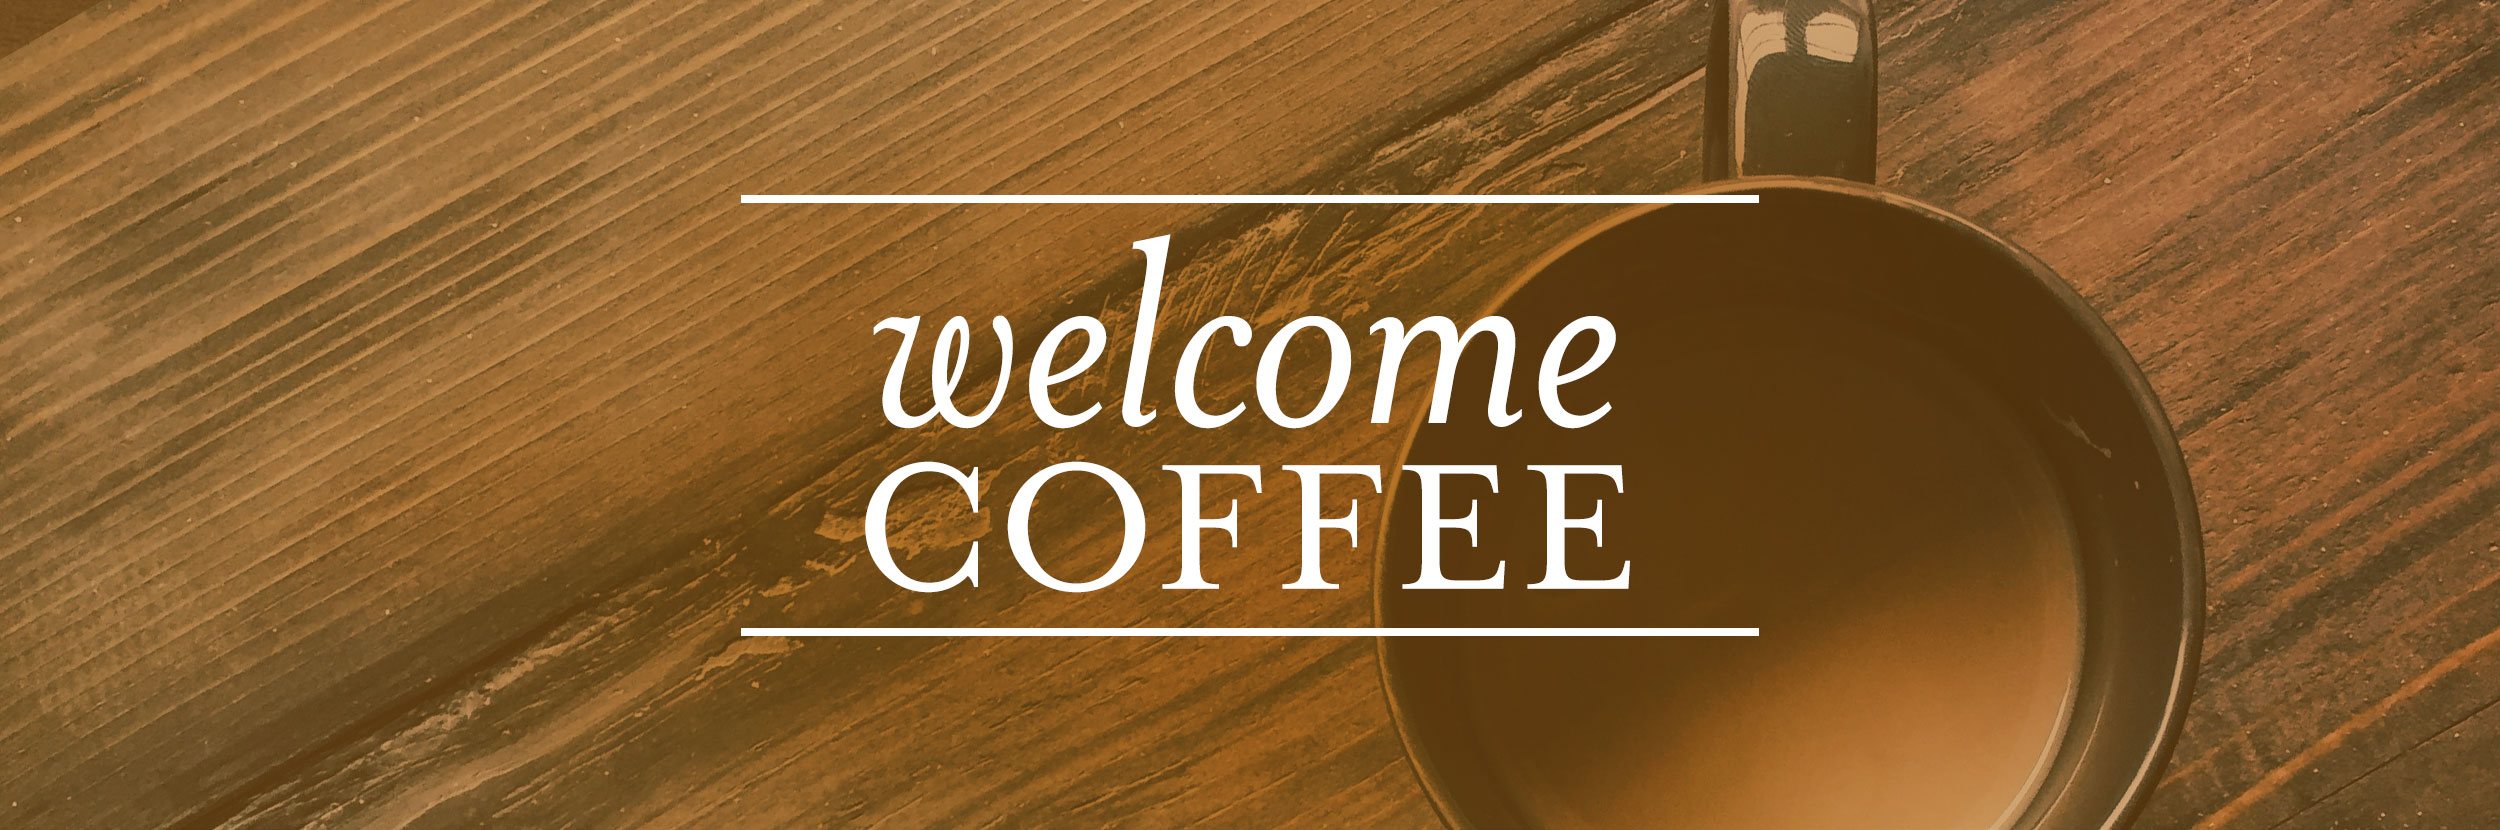 welcome-coffee-banner.jpg